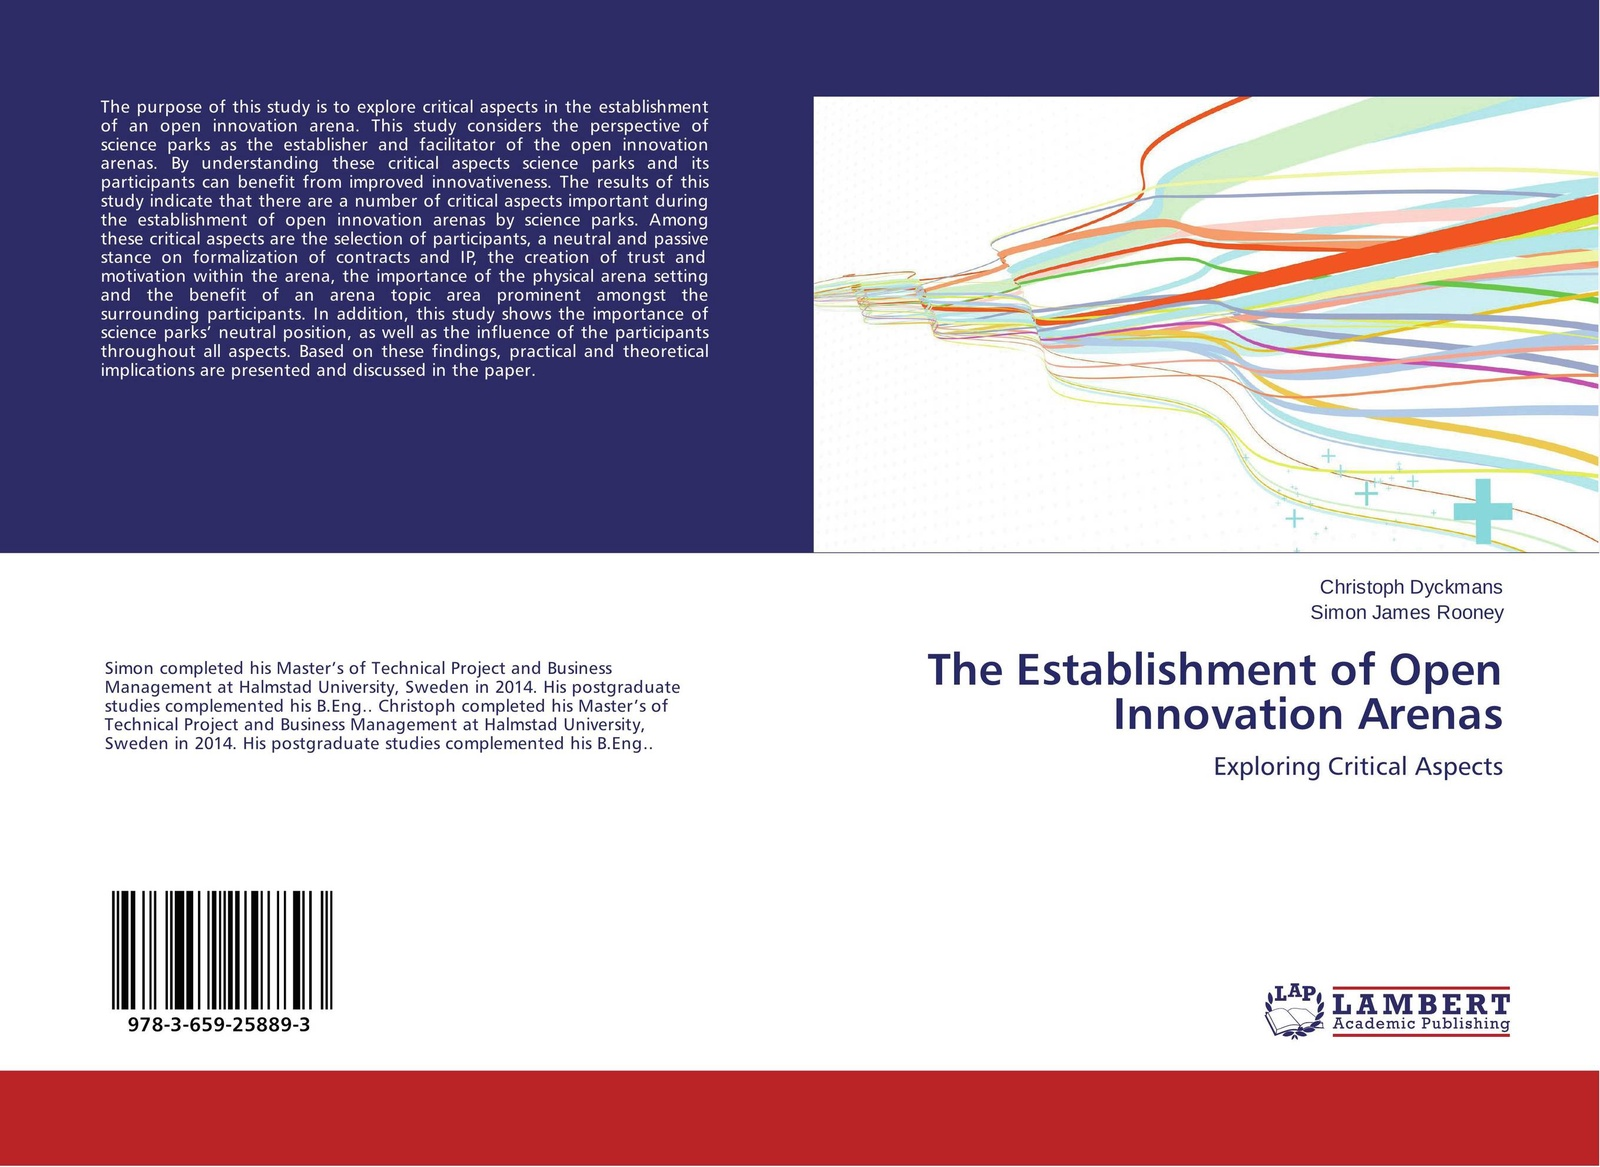 Christoph Dyckmans and Simon James Rooney The Establishment of Open Innovation Arenas